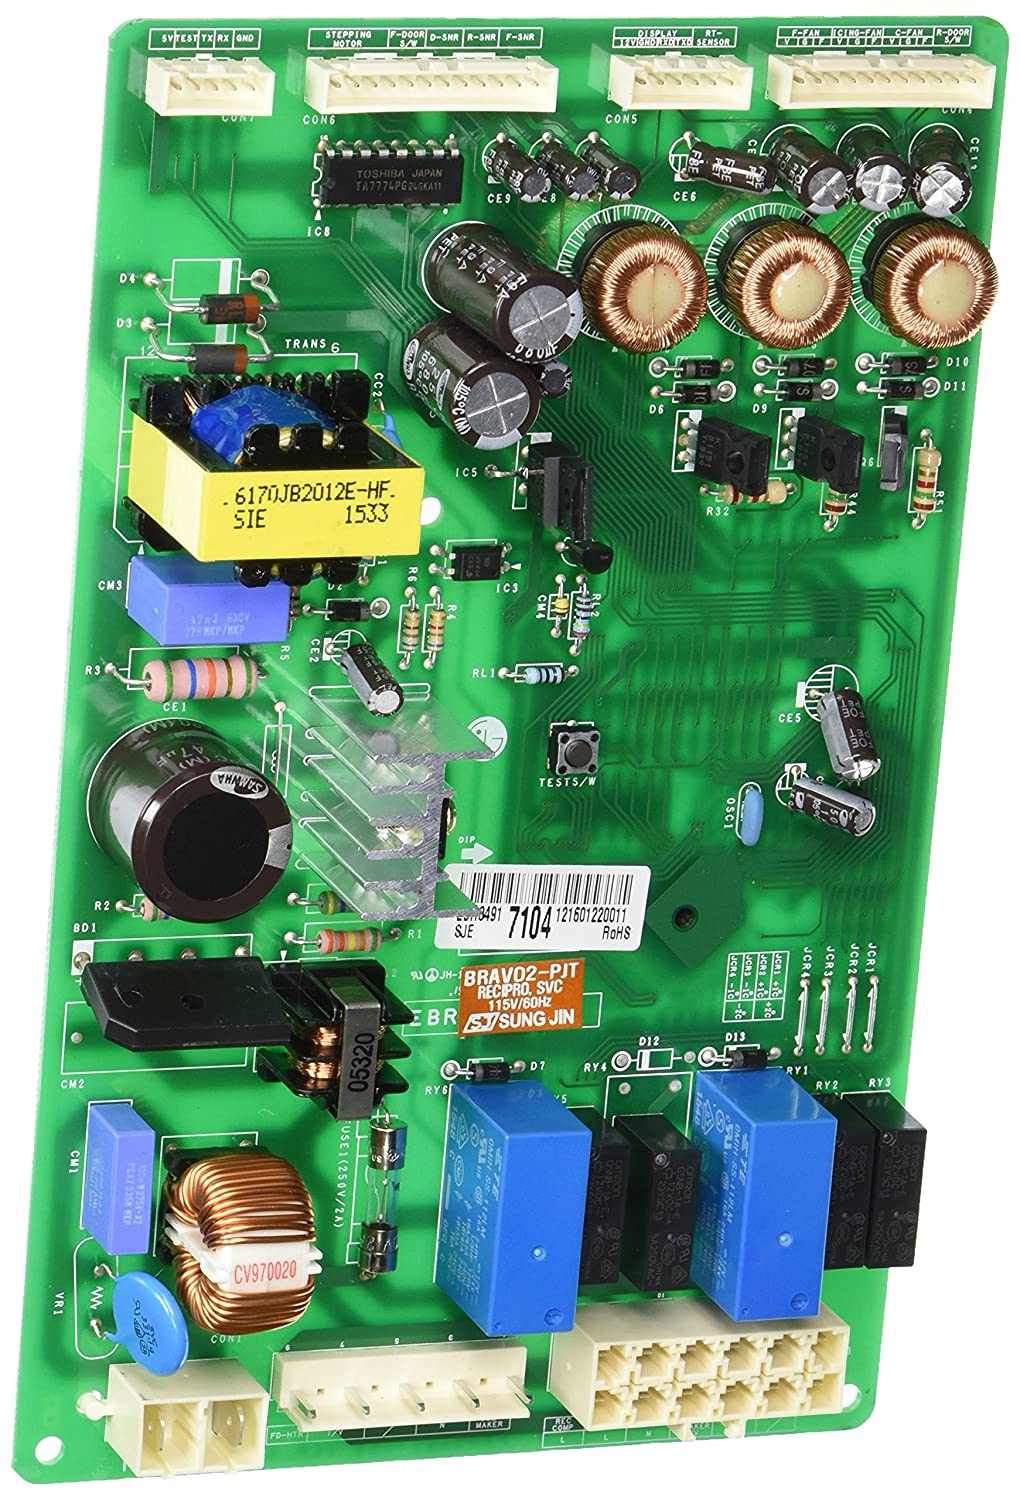 Lg Electronics Ebr34917104 Refrigerator Main Pcb A Home Printed Circuit Board Assembly Pcba China Electronic And Digital Improvement